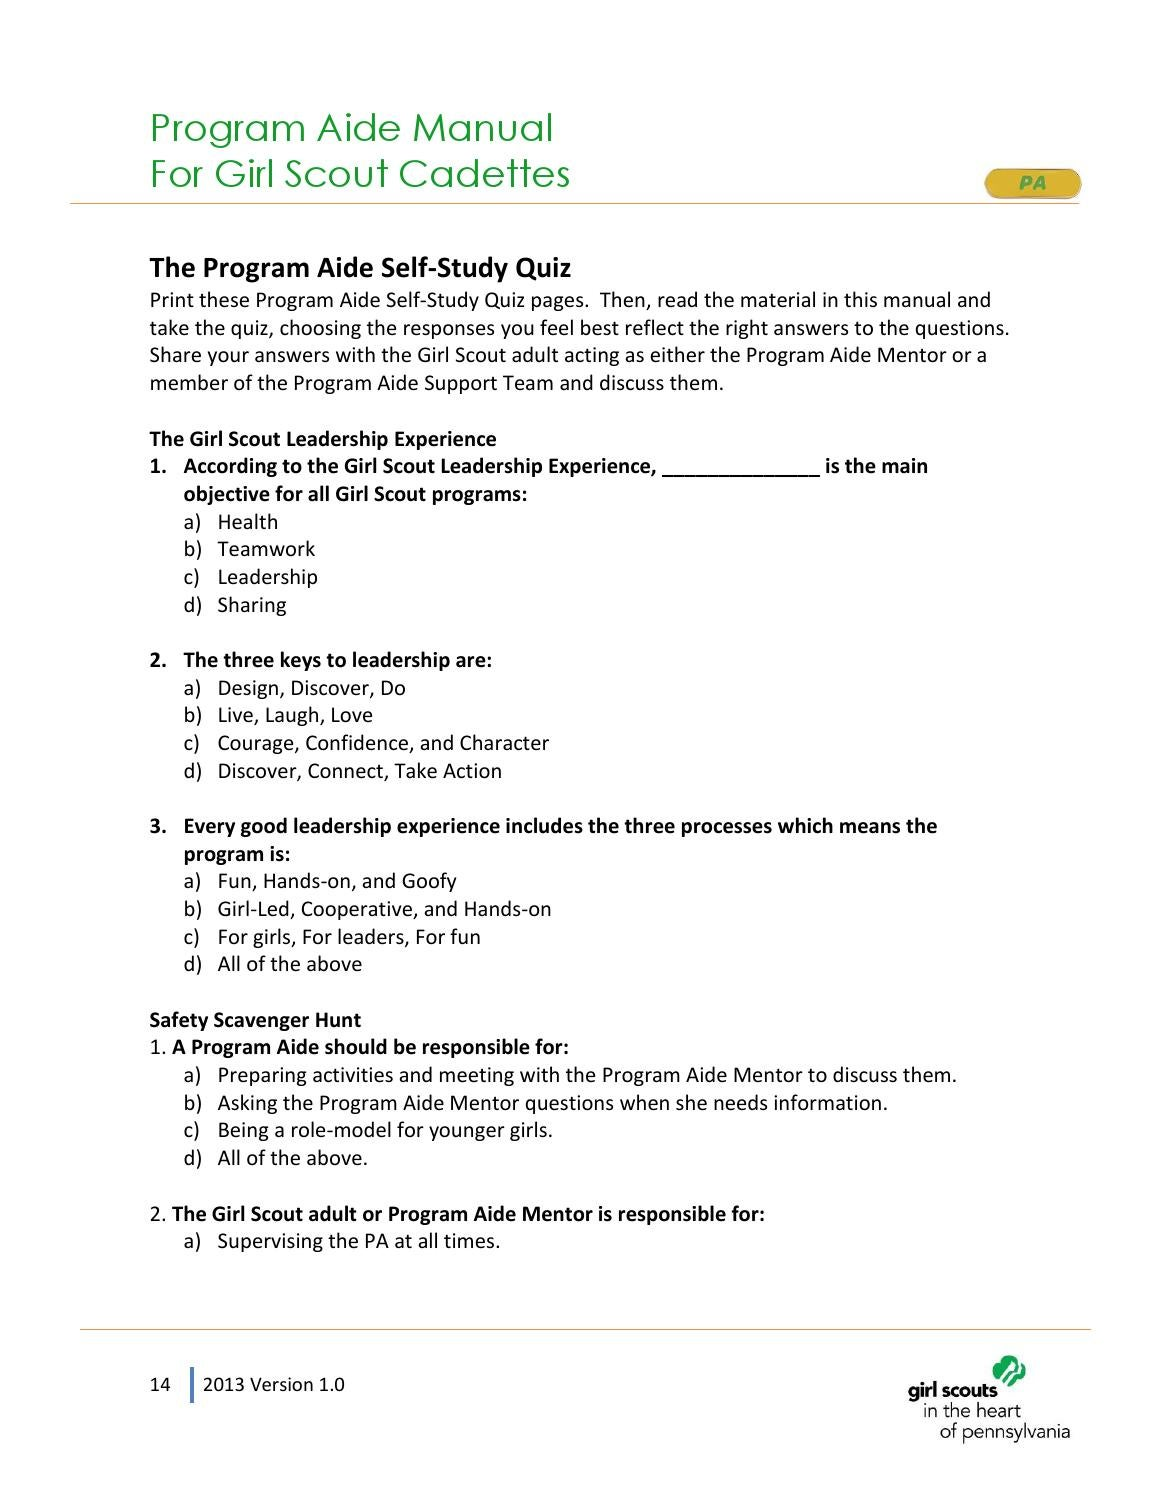 Program Aide Manual for Cadette Girl Scouts by Girl Scouts in the Heart of  PA - issuu